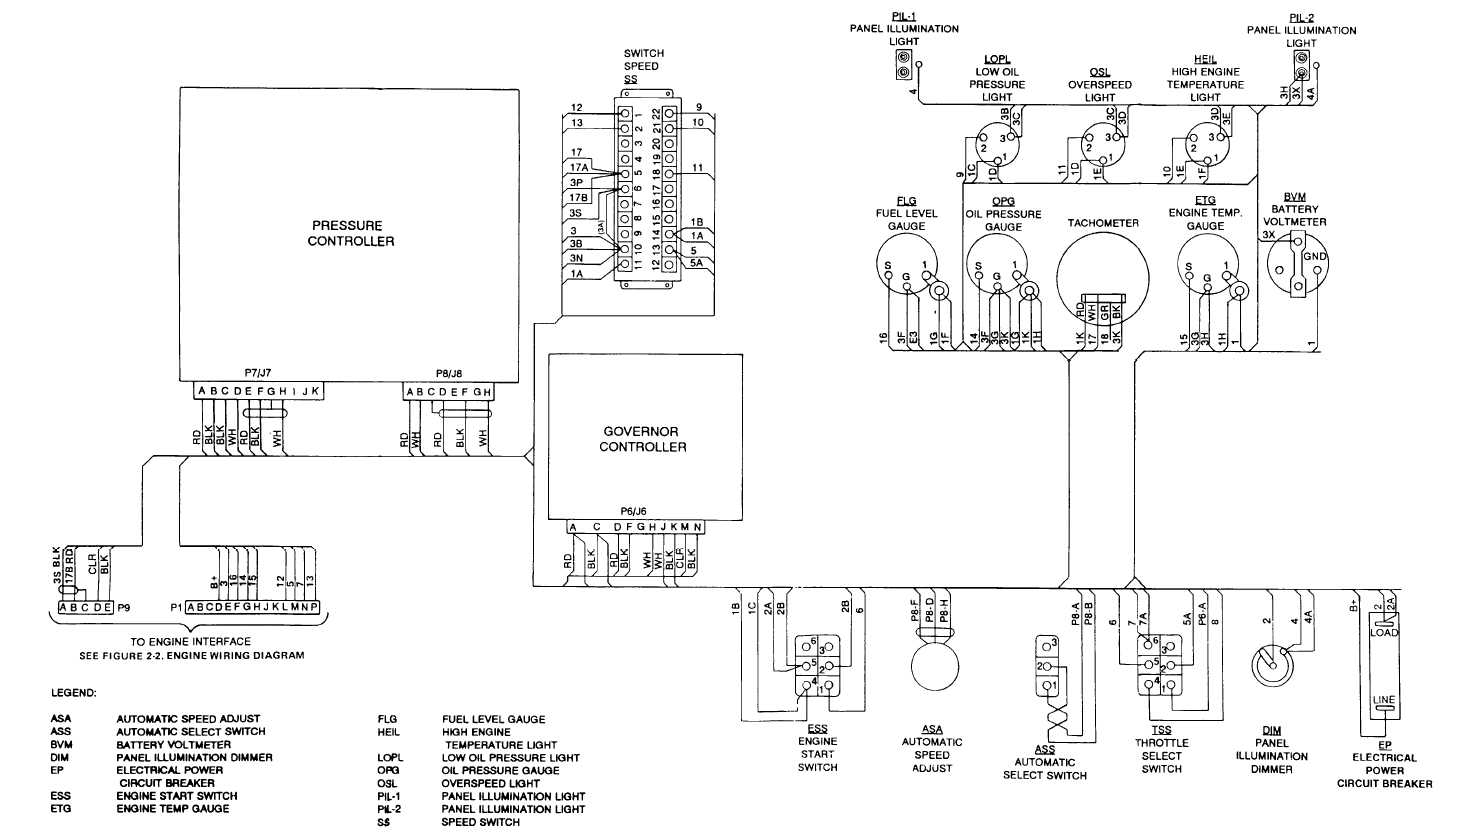 TM 10 4320 315 24_18_1 figure 2 1 control panel wiring diagram (sheet 1 of 4) vcb panel wiring diagram at creativeand.co